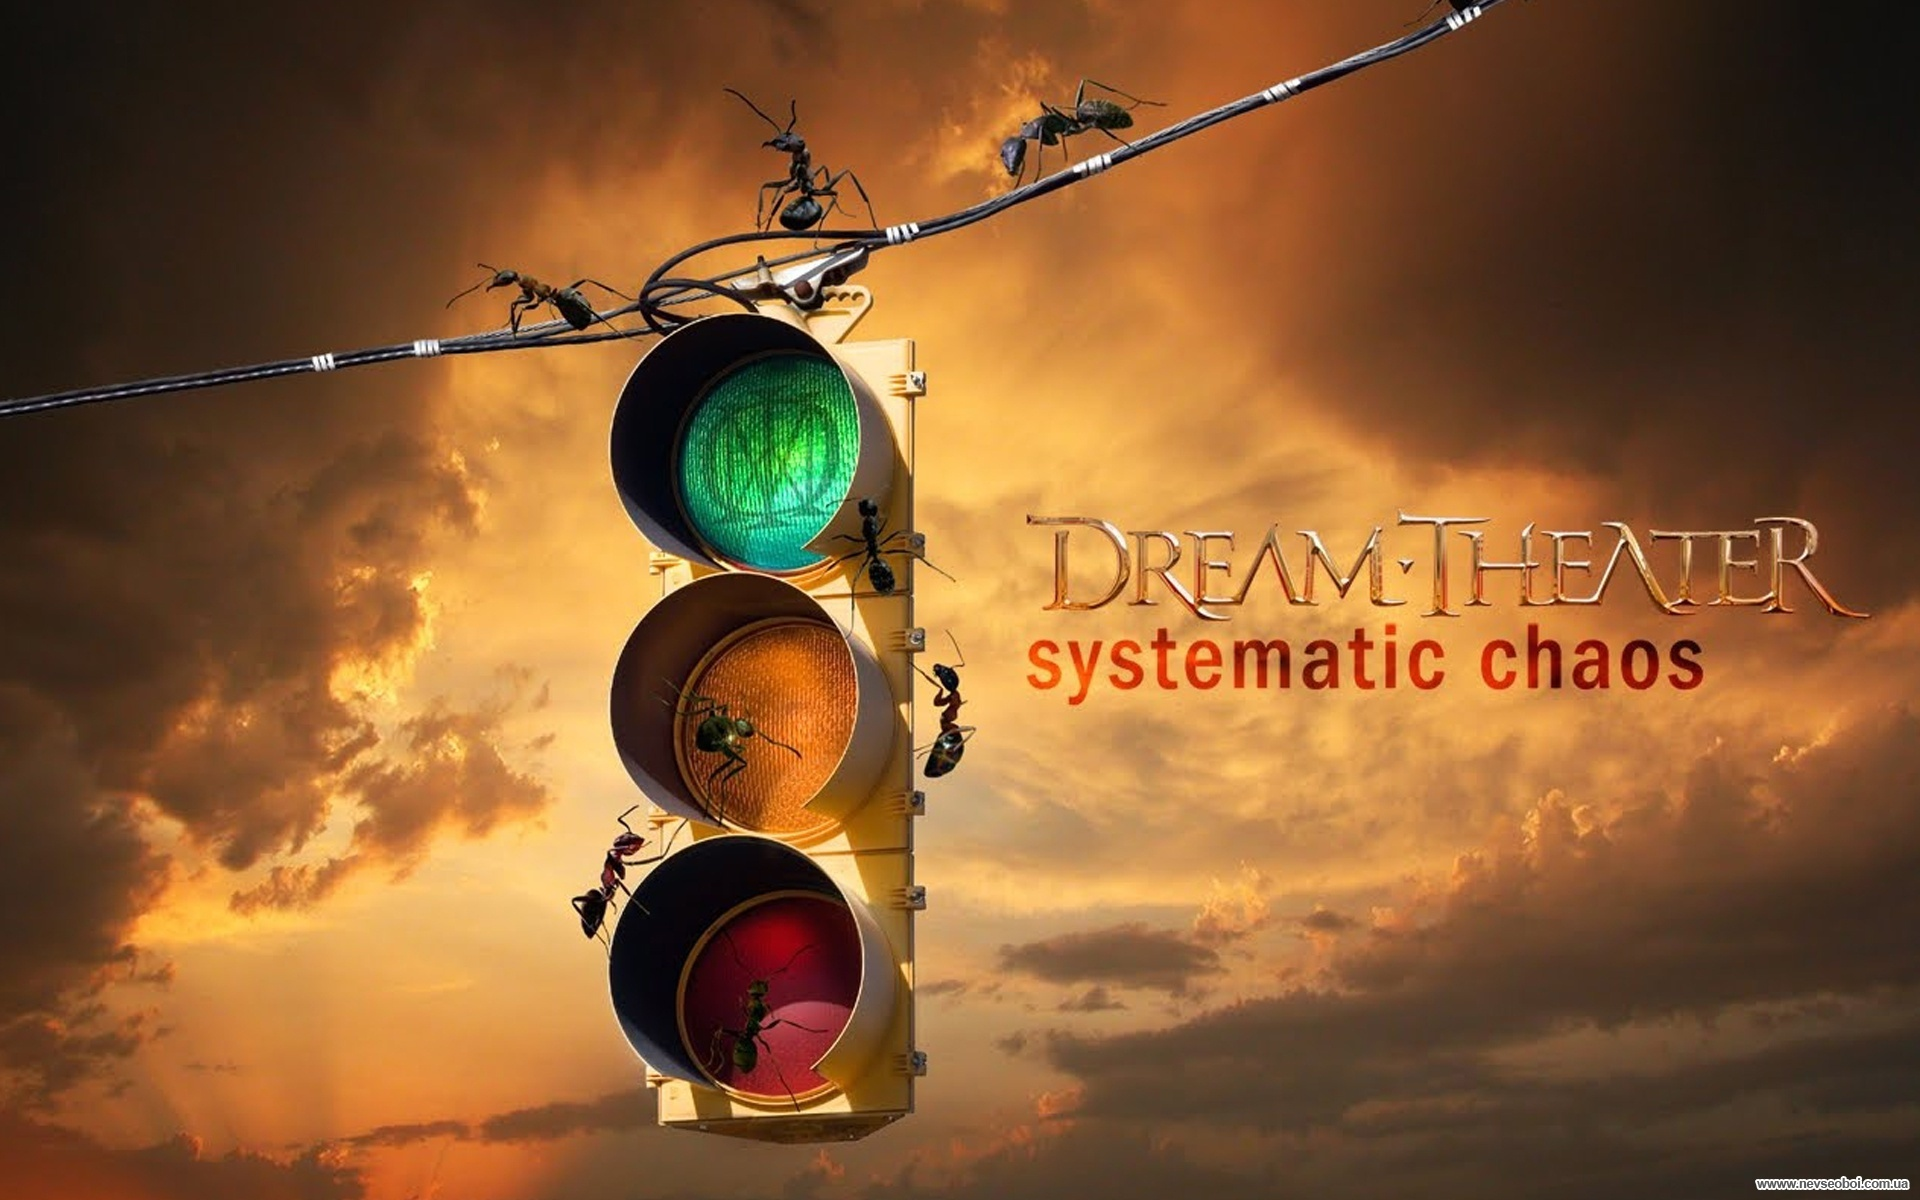 Dream Theater Computer Wallpapers Desktop Backgrounds 1920x1200 1920x1200